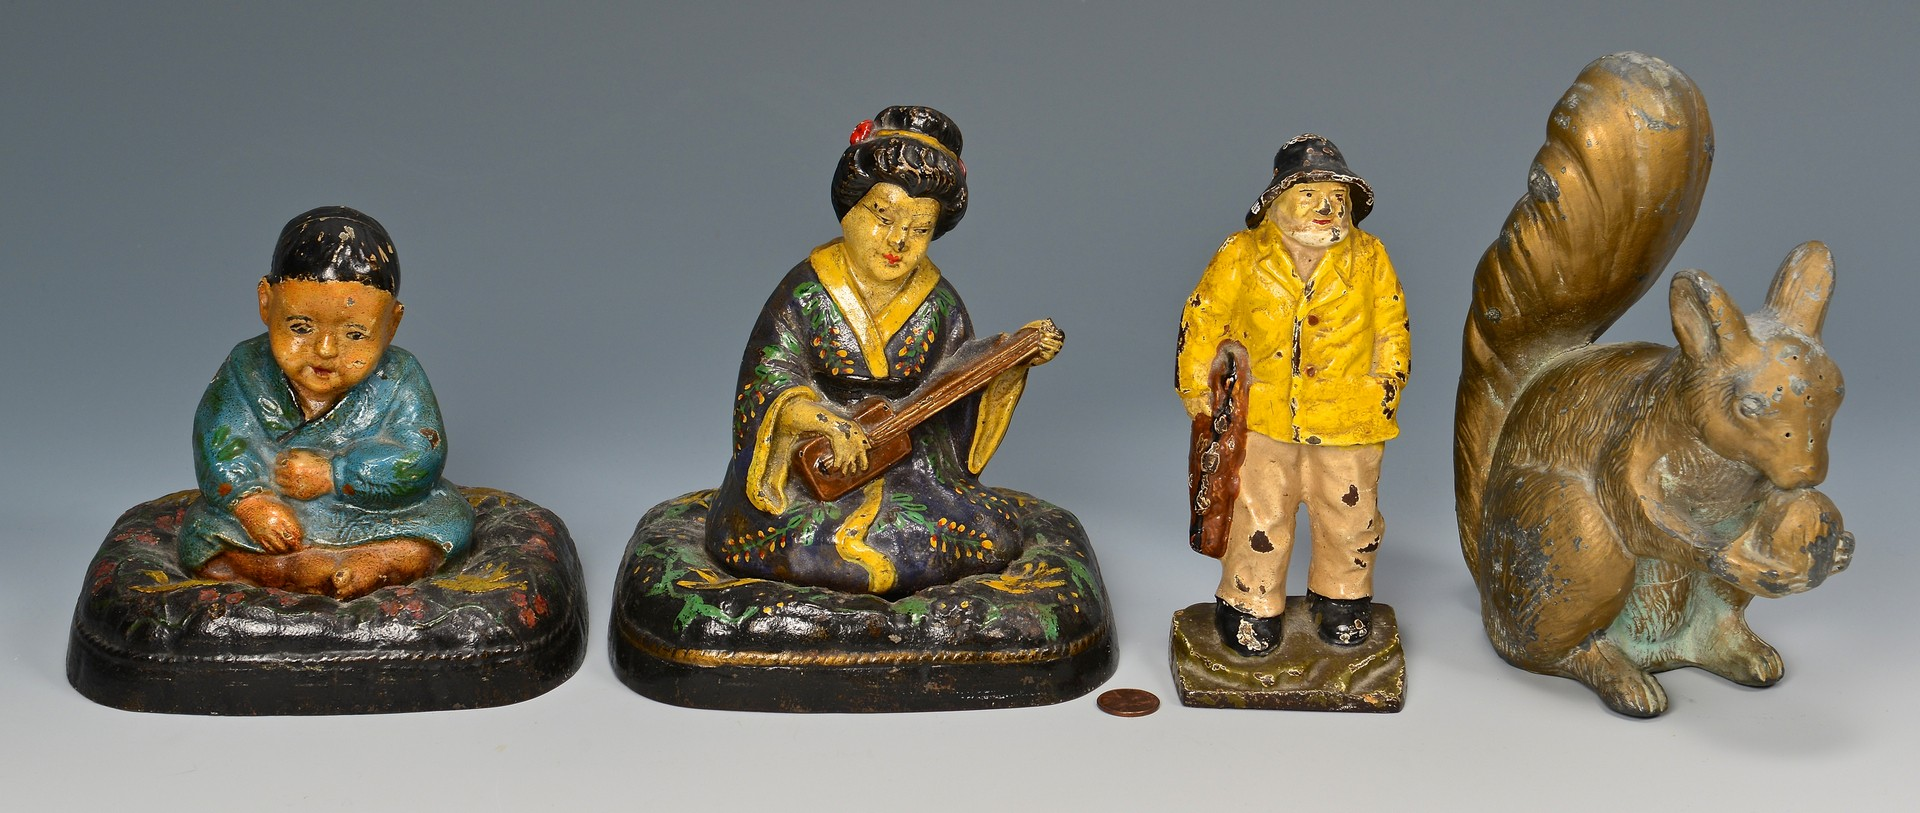 Lot 800: Three Cast Iron Doorstops & One Gardening Figural